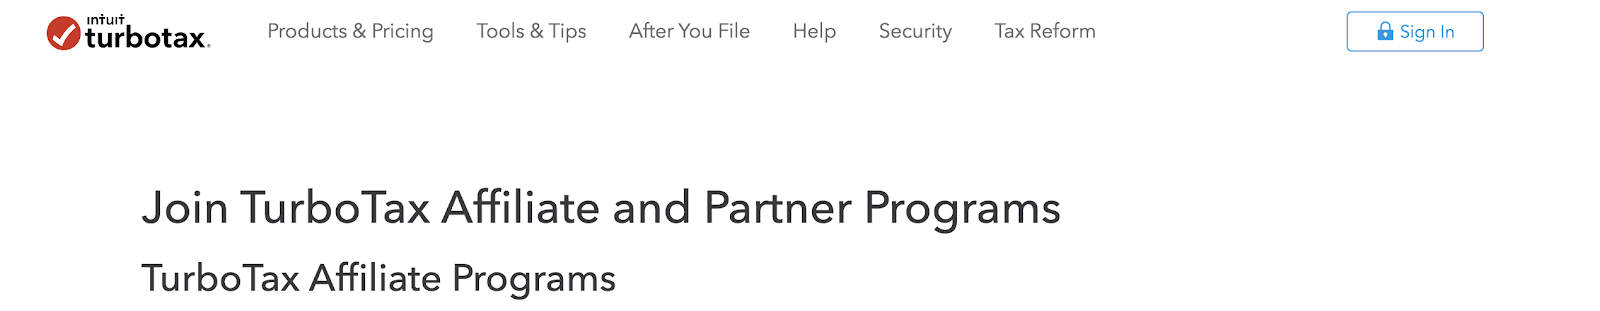 TurboTax Affiliate Program Landing Page (Screenshot)